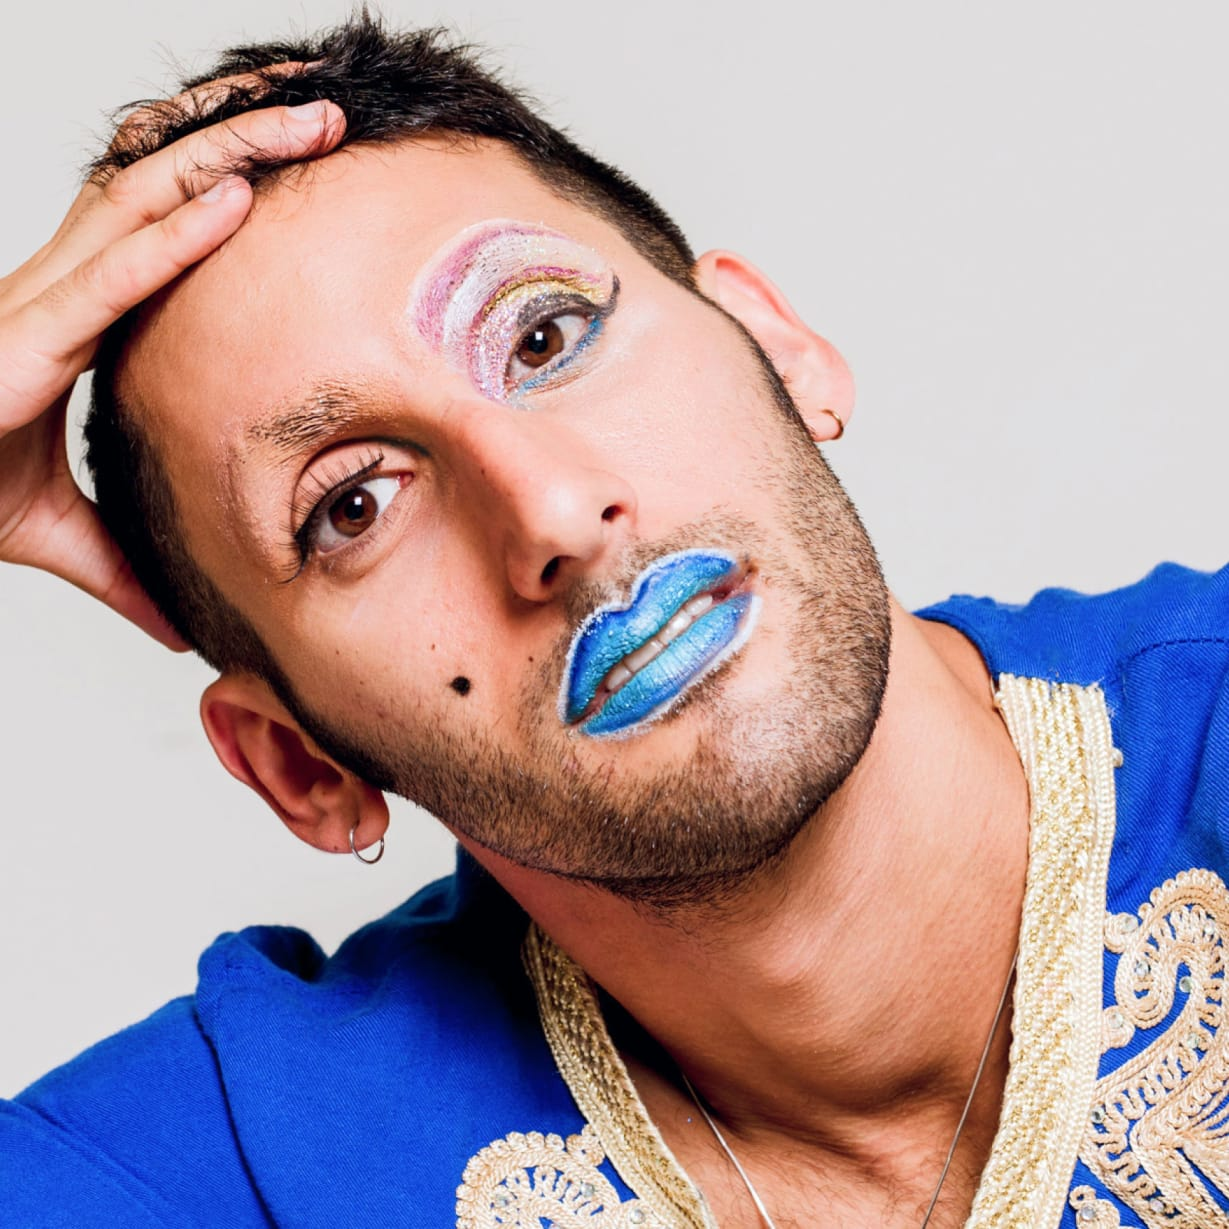 A man wearing blue lipstick.